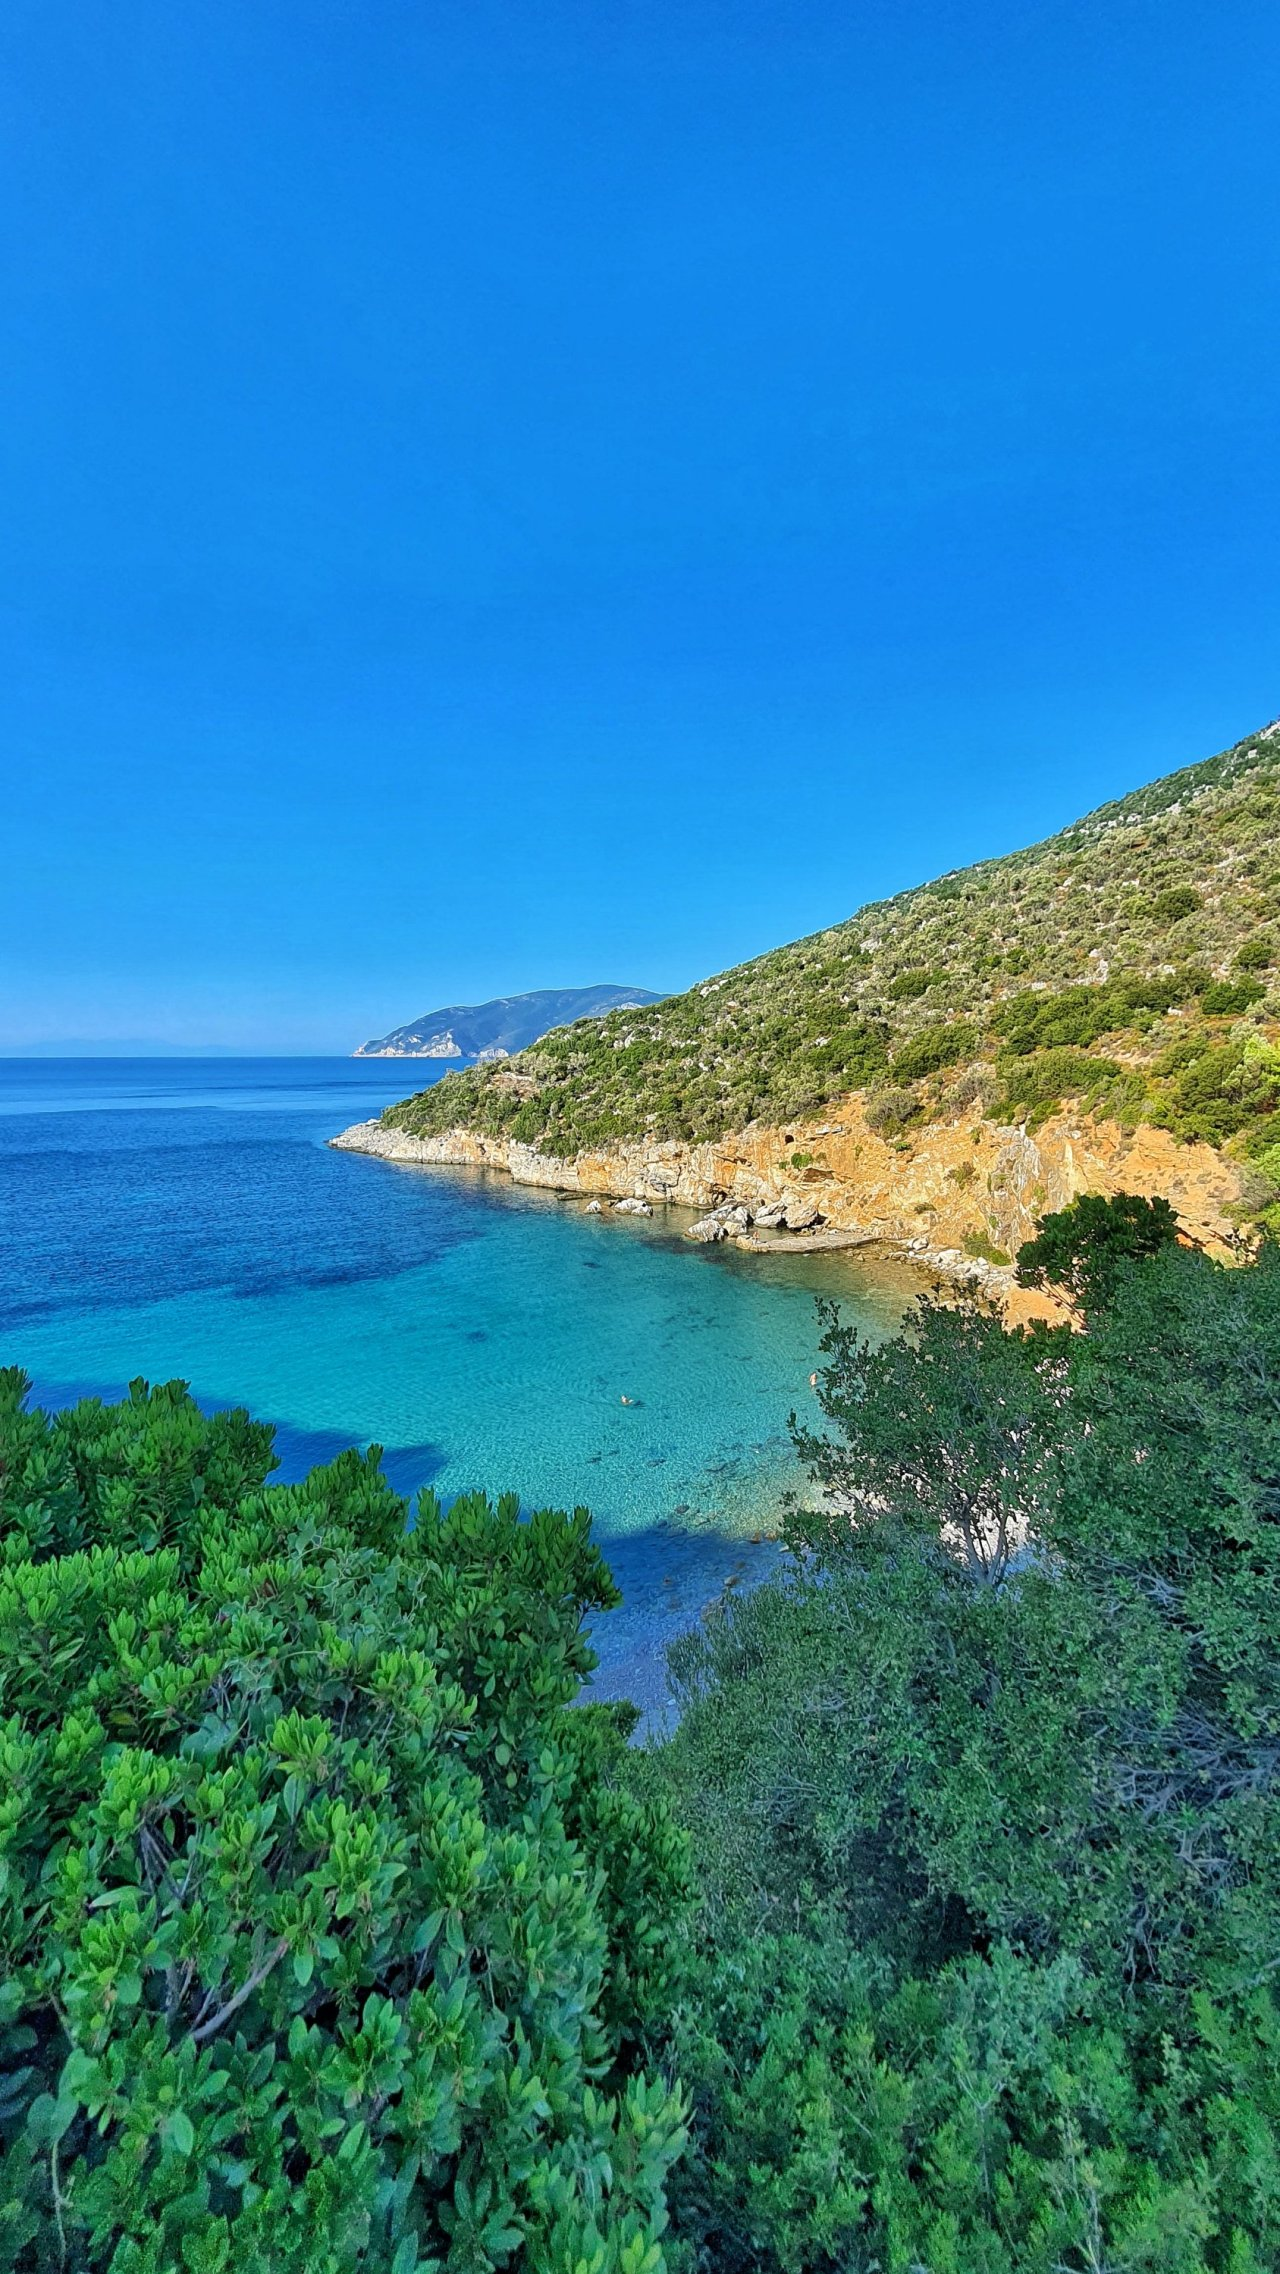 Mikros Mourtias beach, Alonissos 🇬🇷